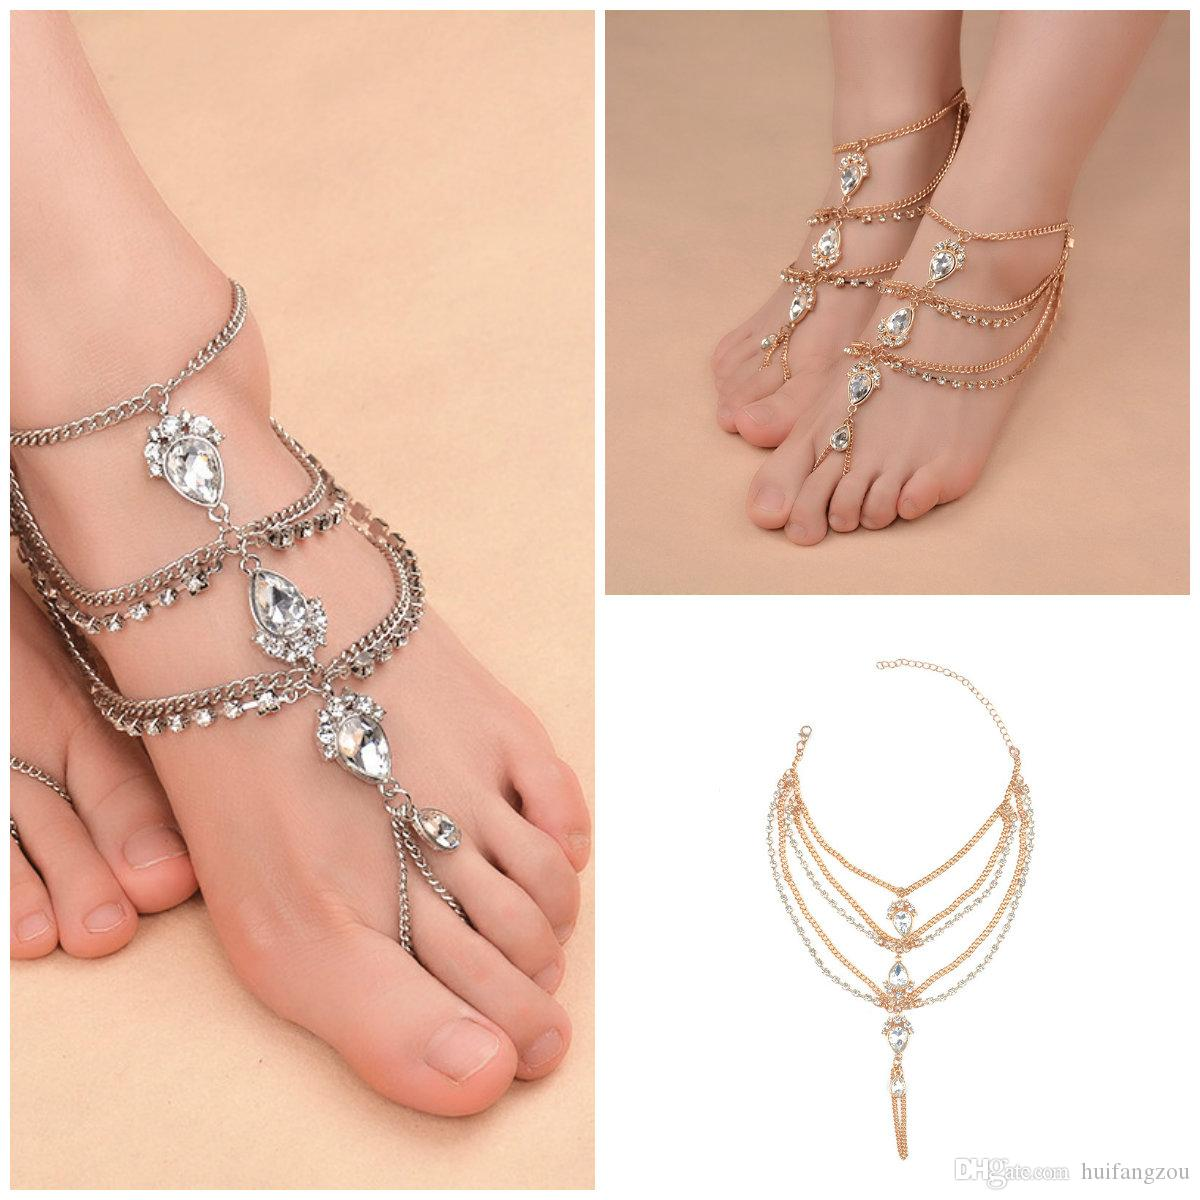 sweetheart bijou babysweetheartanklet nana products anklets productimg finejwlry ankle anklet gold real bracelets collections bracelet